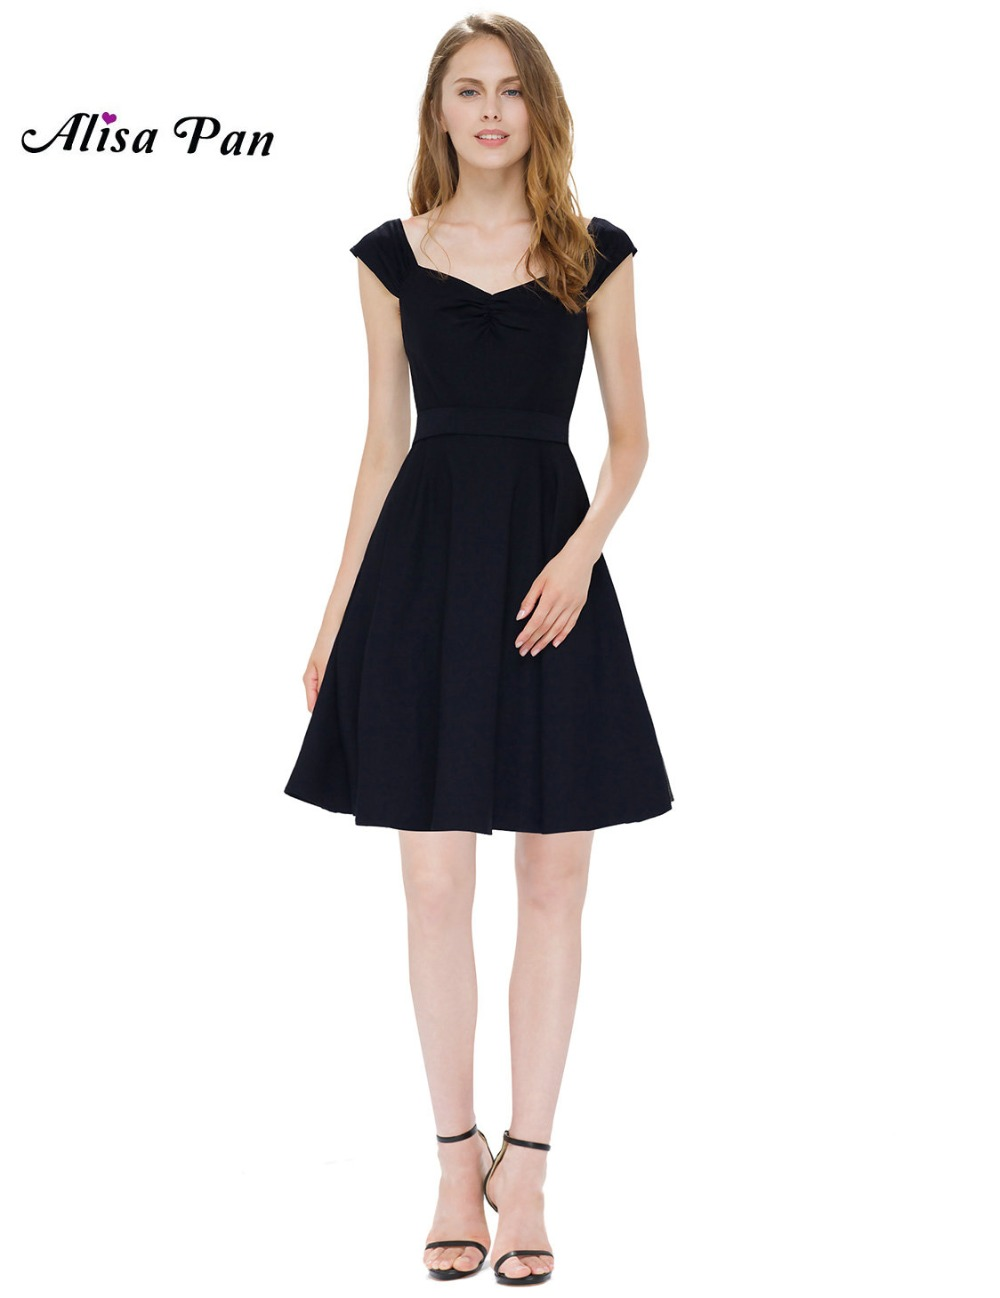 Compare Prices on Black Christmas Dresses- Online Shopping/Buy Low ...